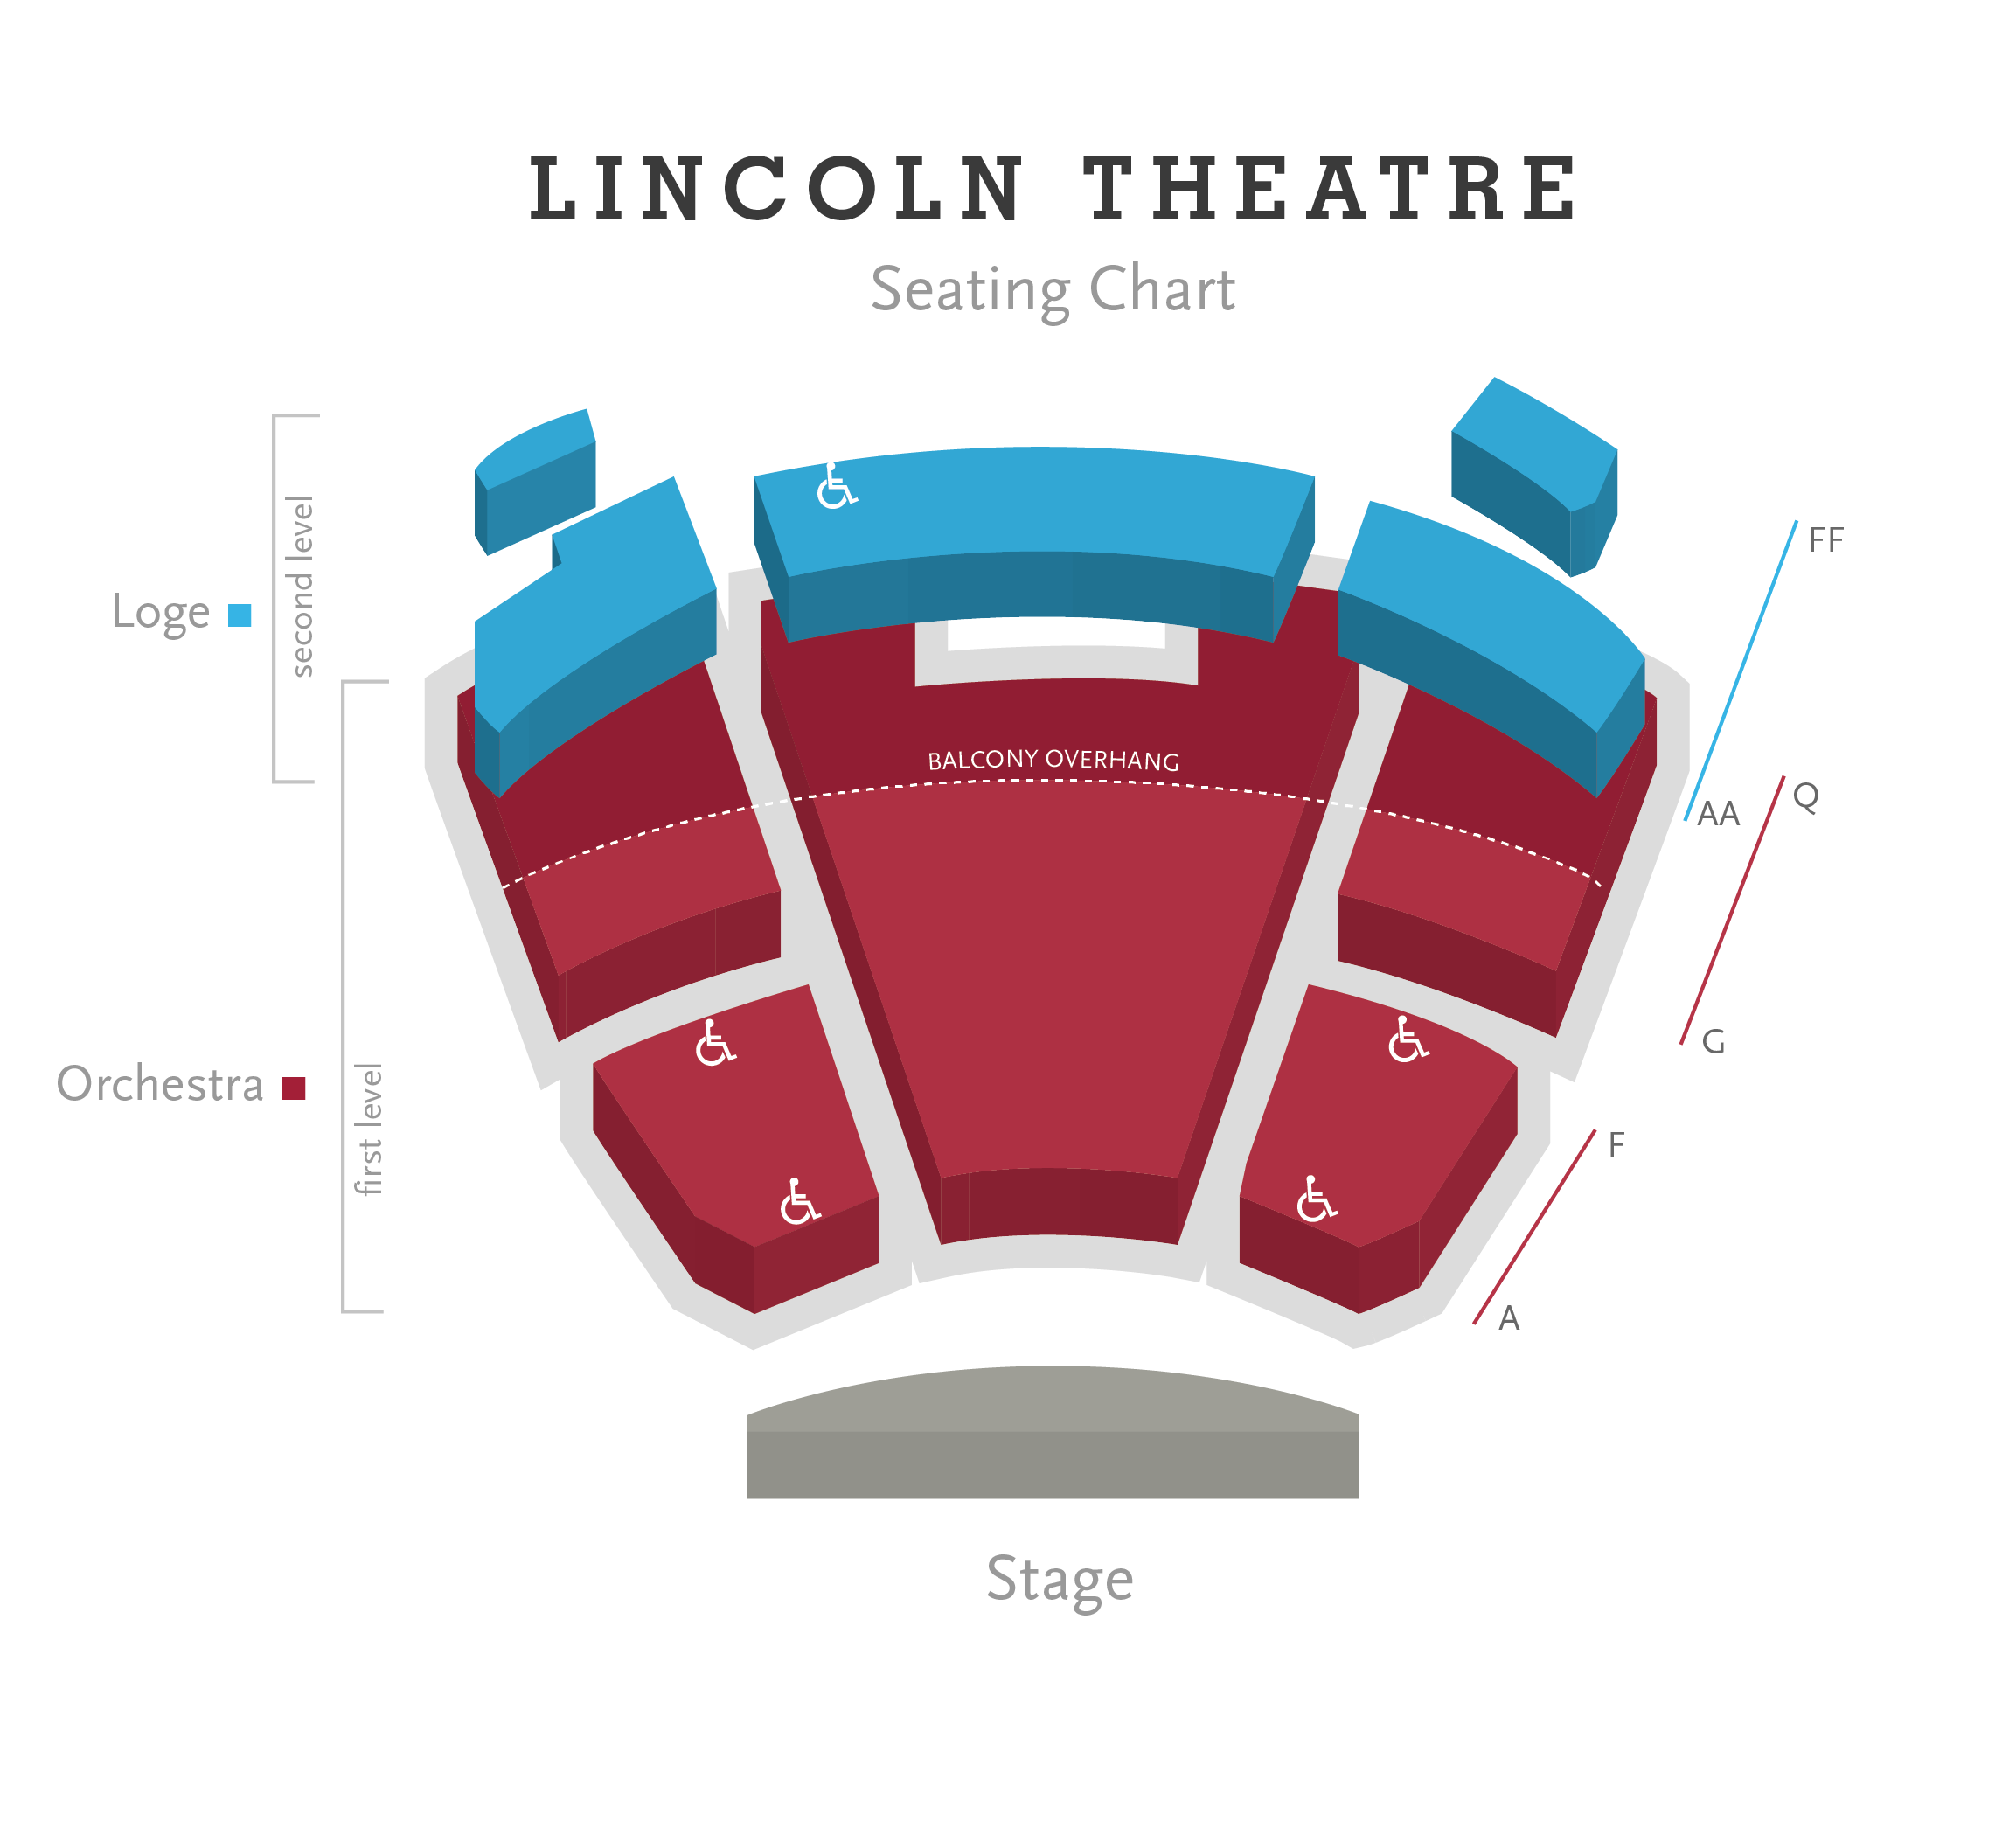 Lincoln Theatre Seating Chart Png